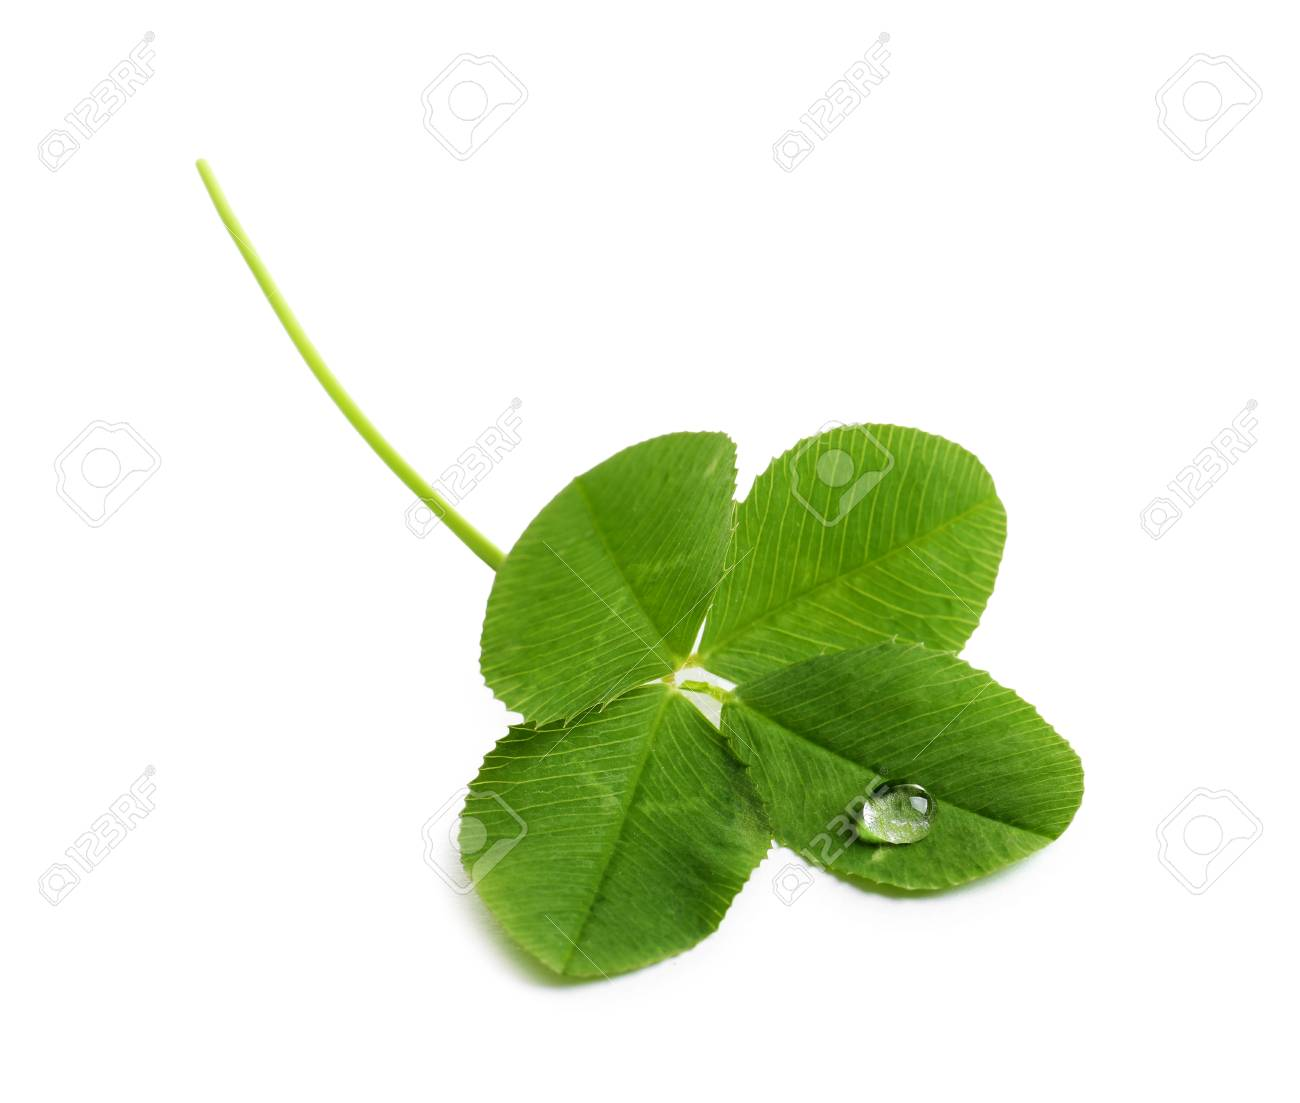 Green four-leaf clover on white background - 106506723